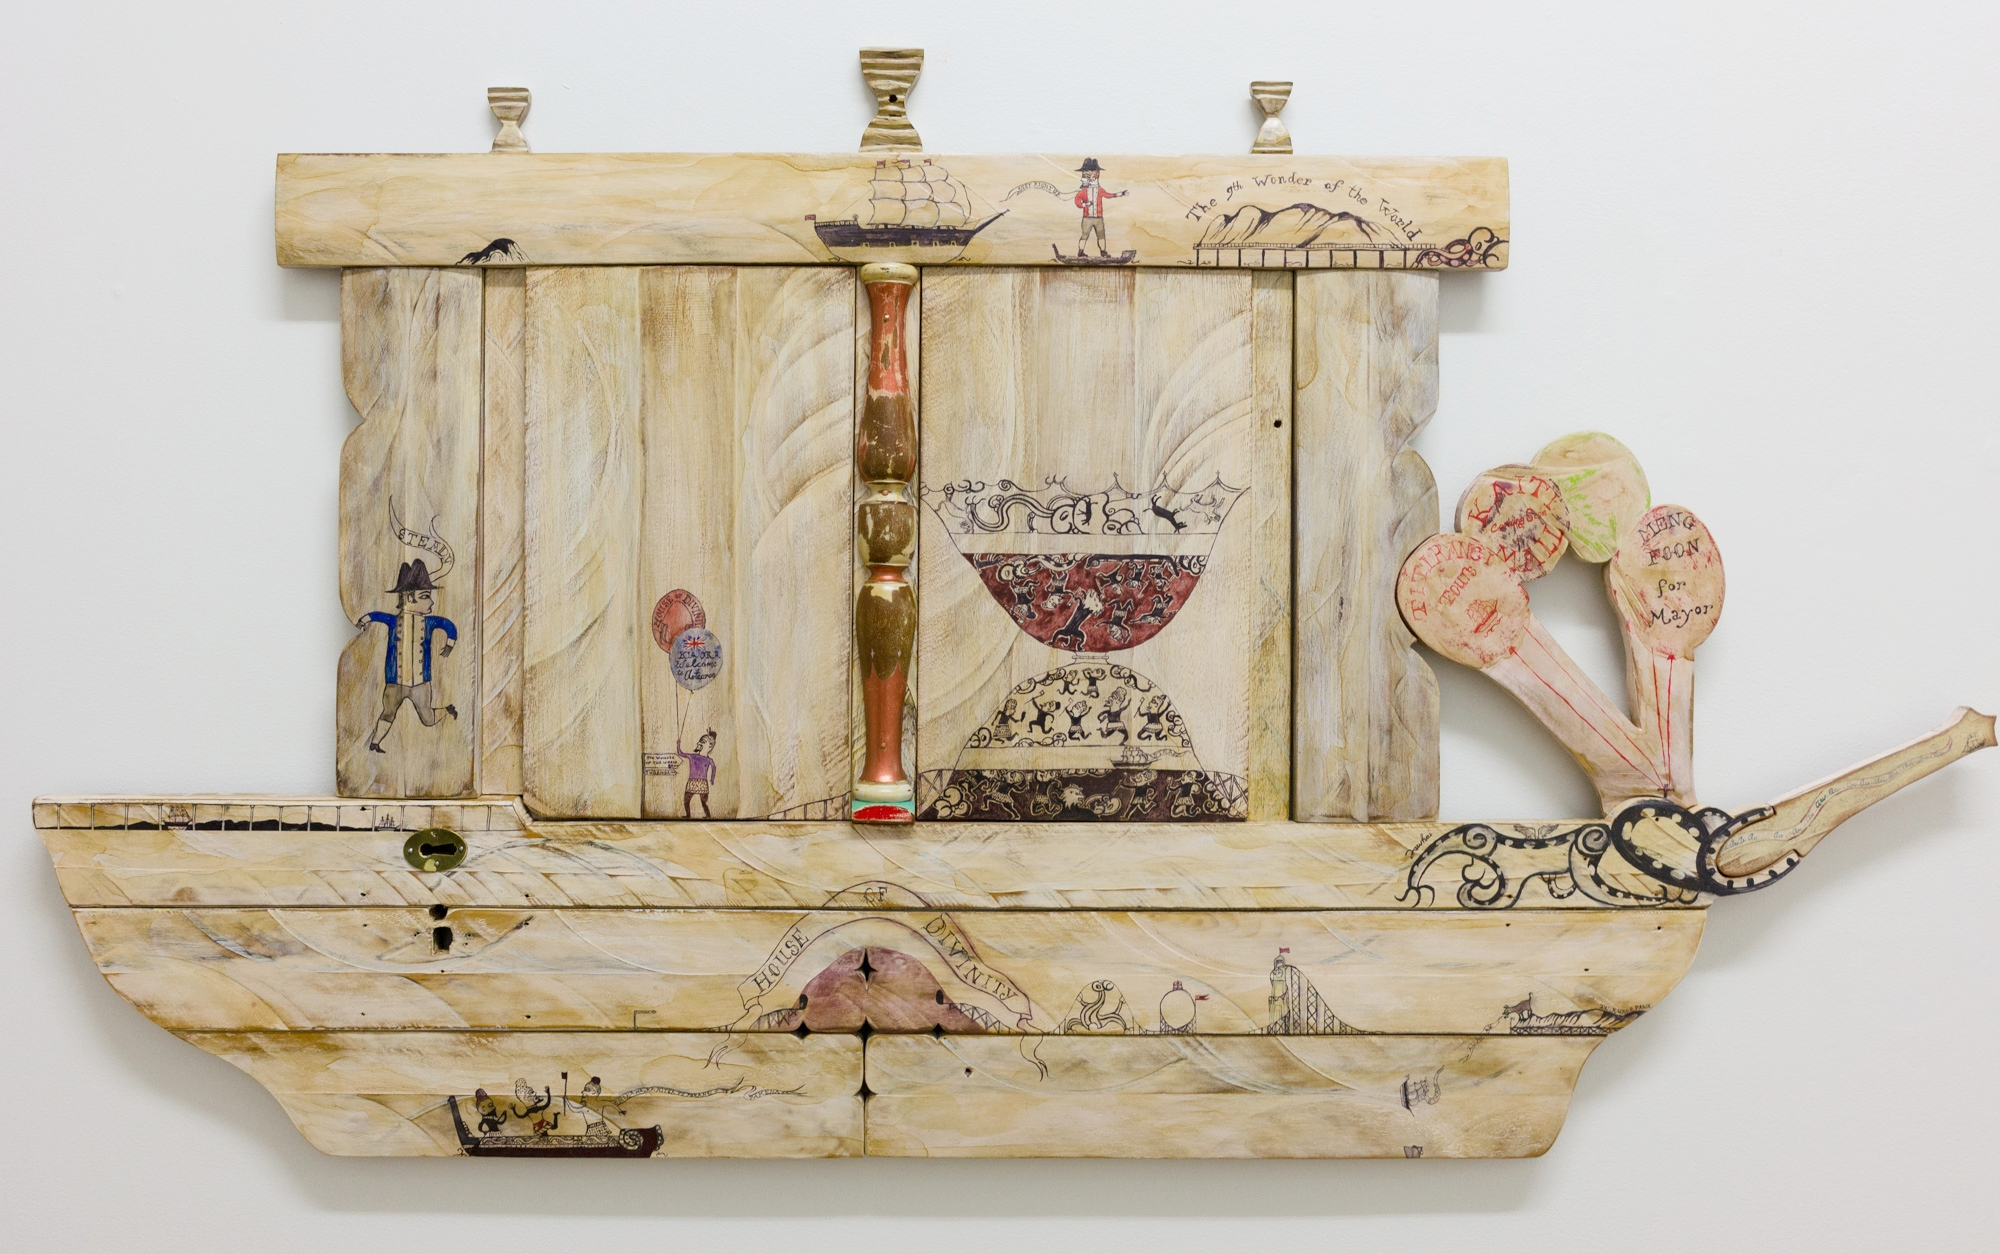 House of Divinity  2016 Paint and whakairo using reclaimed wood  1355 (H) x 775 (W) x 35mm (D)    This work explores our bi cultural journey within the metaphoric context of     a fun park looking at the de-contextual process of land and culture.